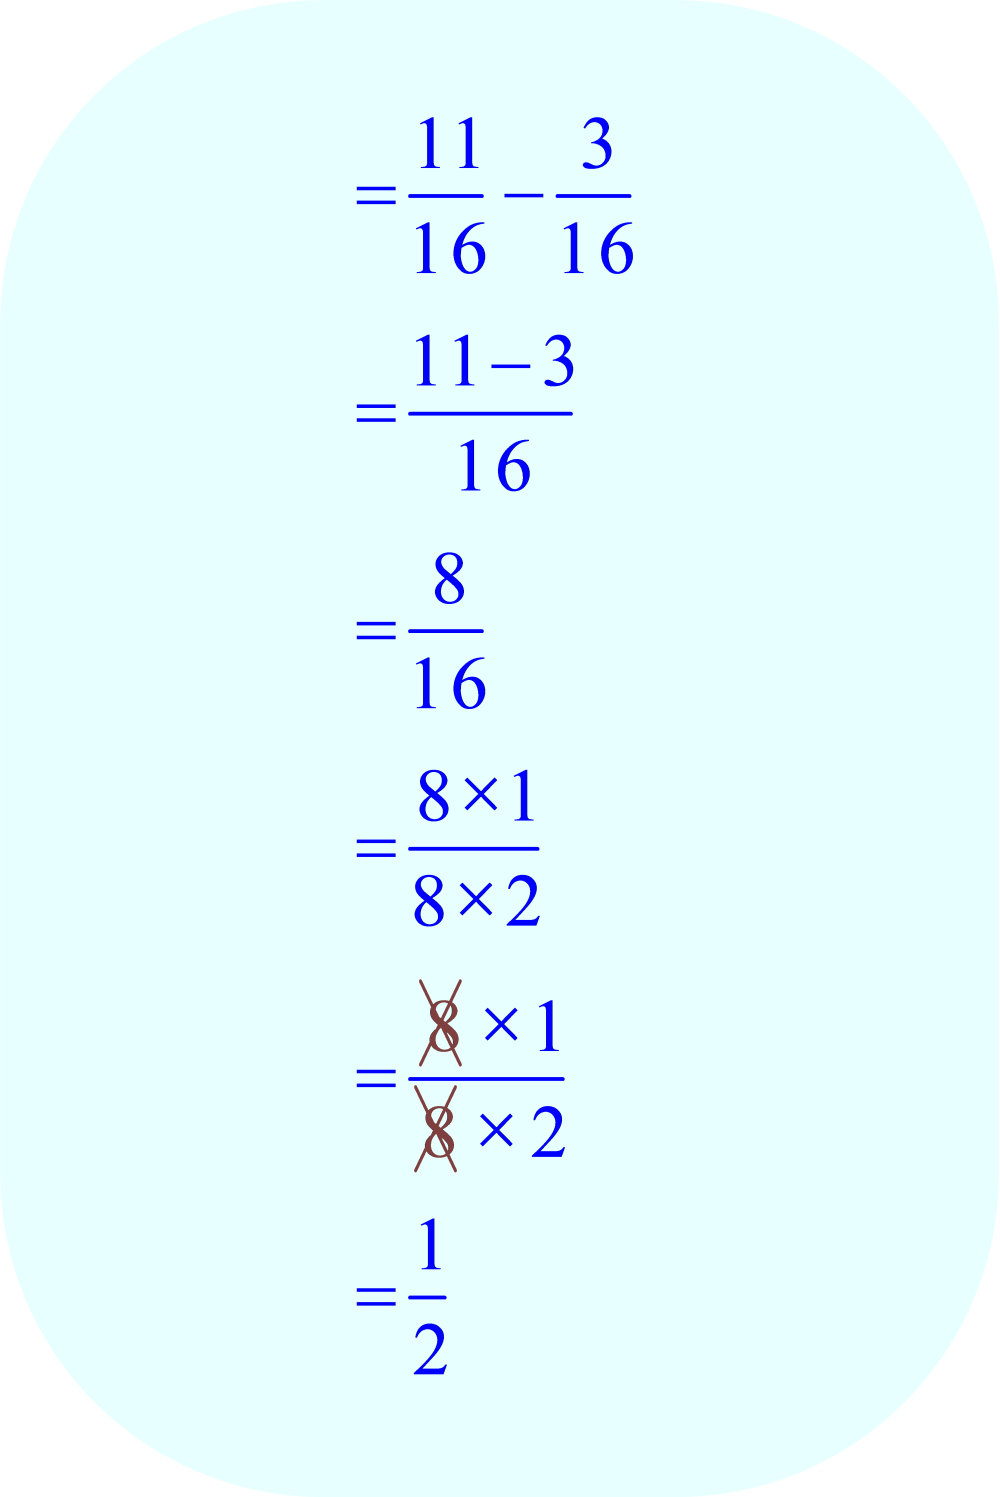 subtract fractions:  11/16 - 3/16